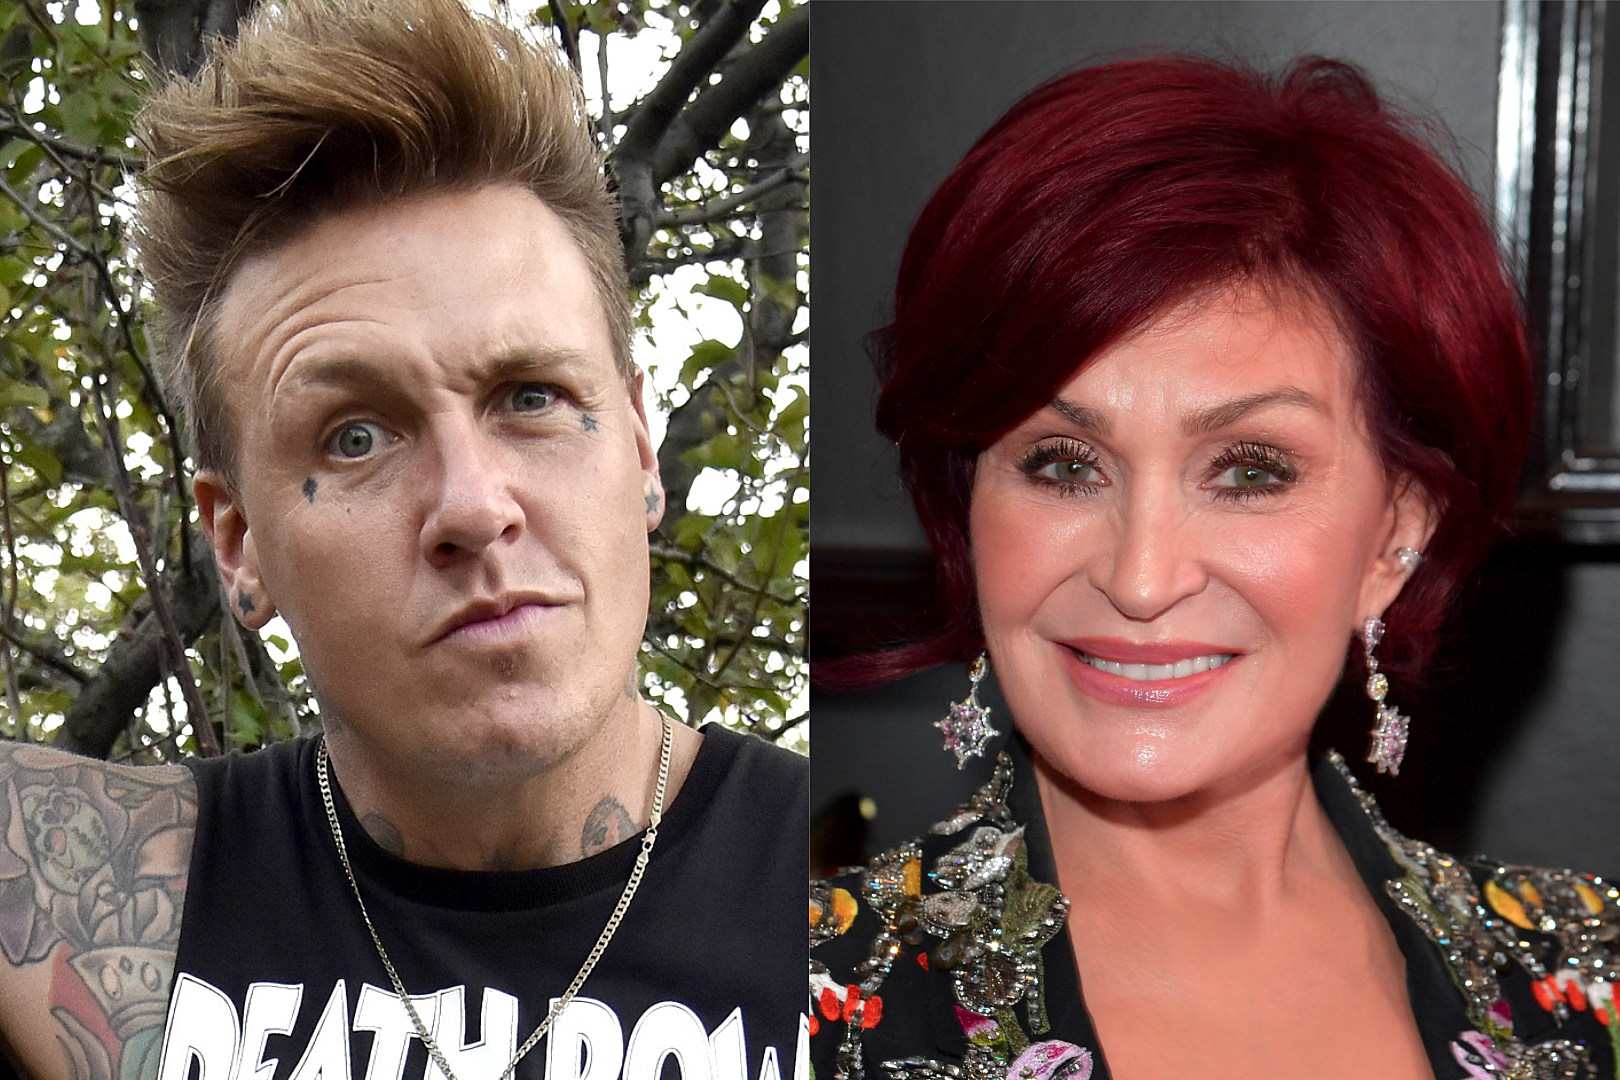 Sharon Osbourne Once Scolded Papa Roach for Starting Ozzfest Riot